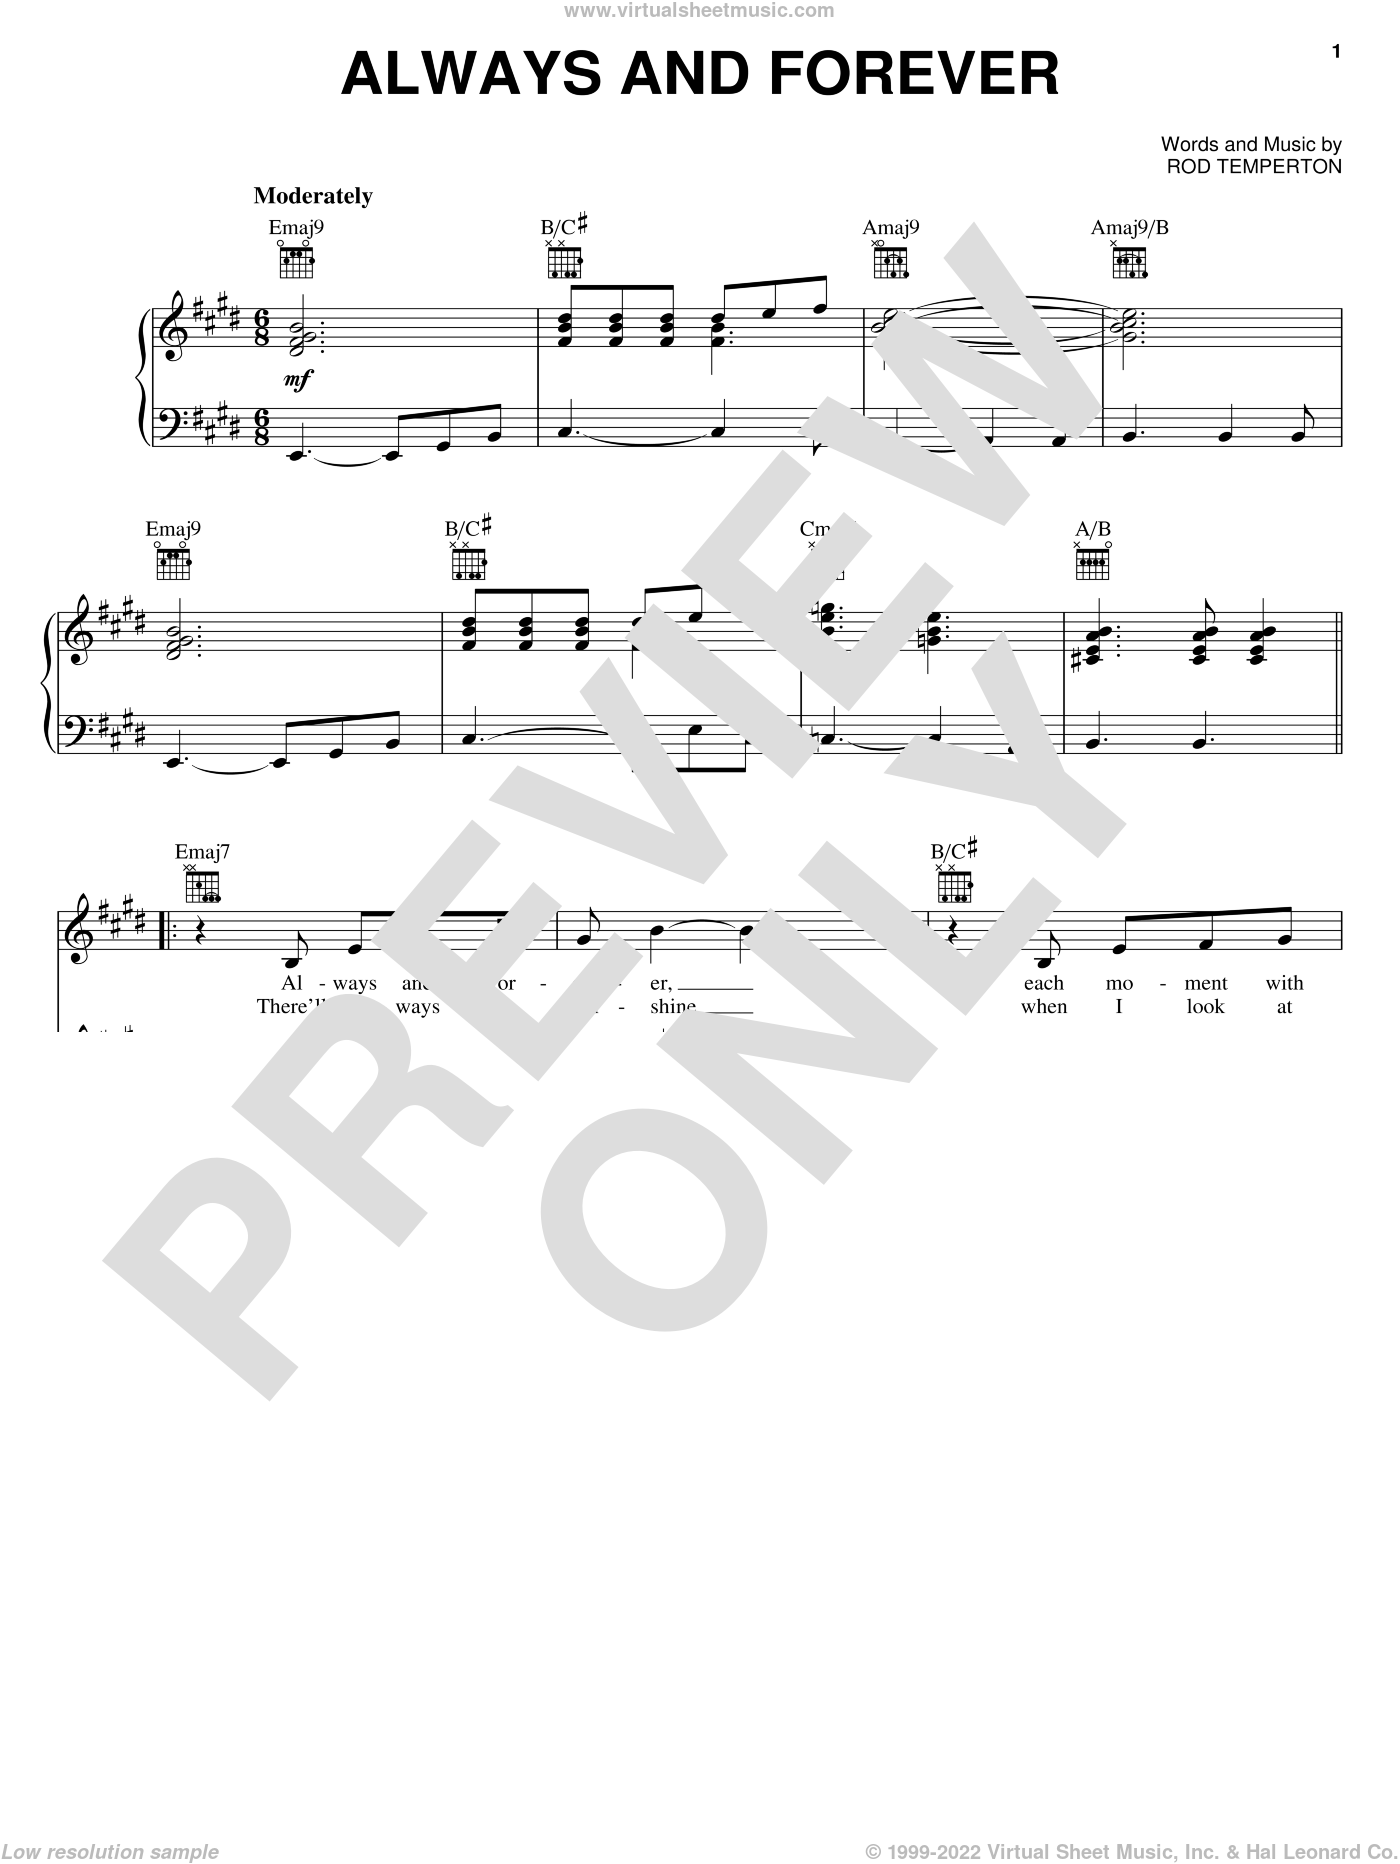 Always And Forever sheet music for voice, piano or guitar by Heatwave and Rod Temperton, intermediate skill level